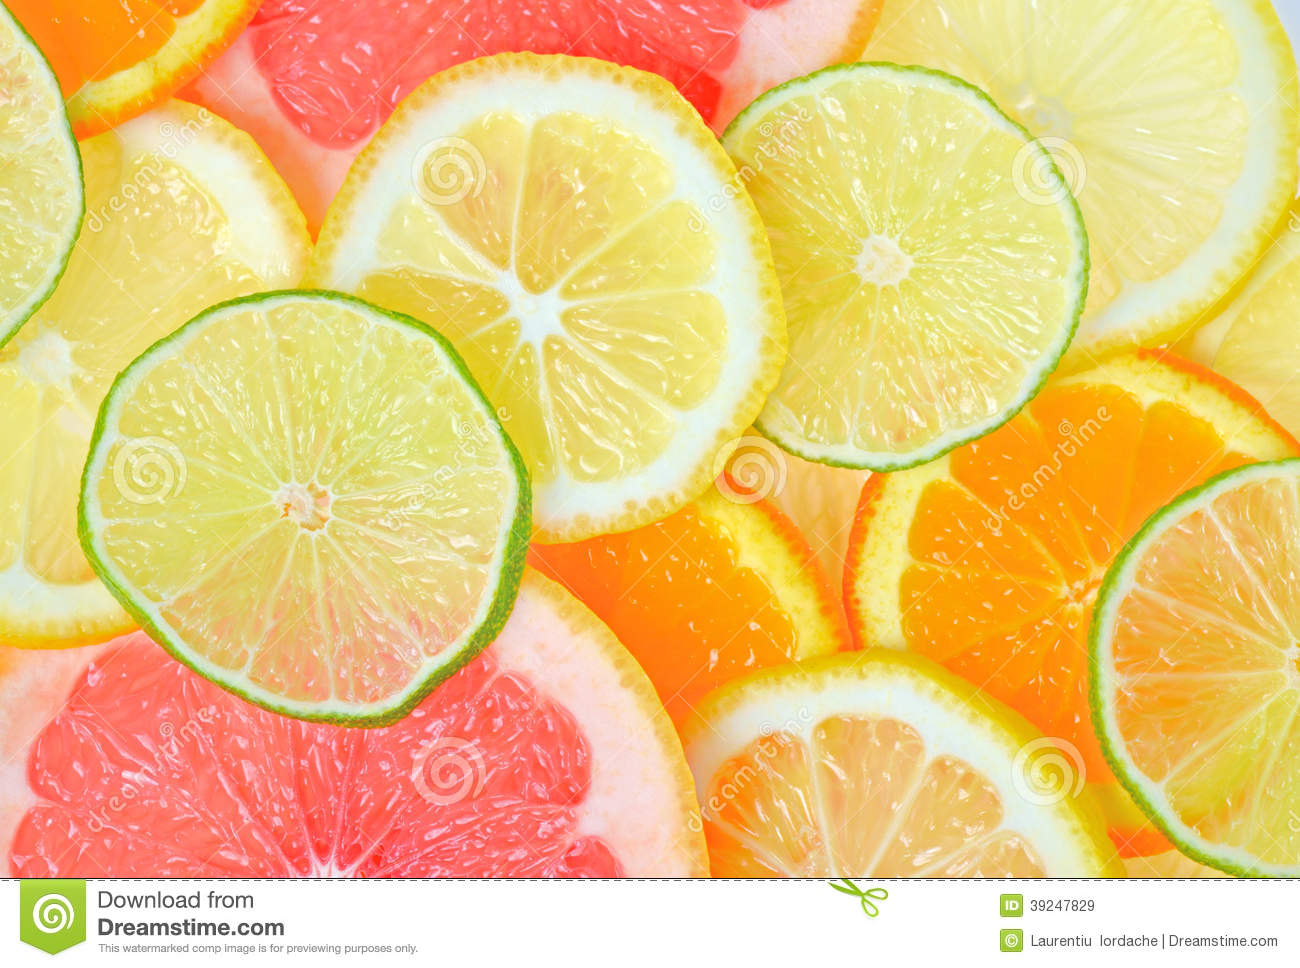 citrus fruit is dried fruit as healthy as fresh fruit